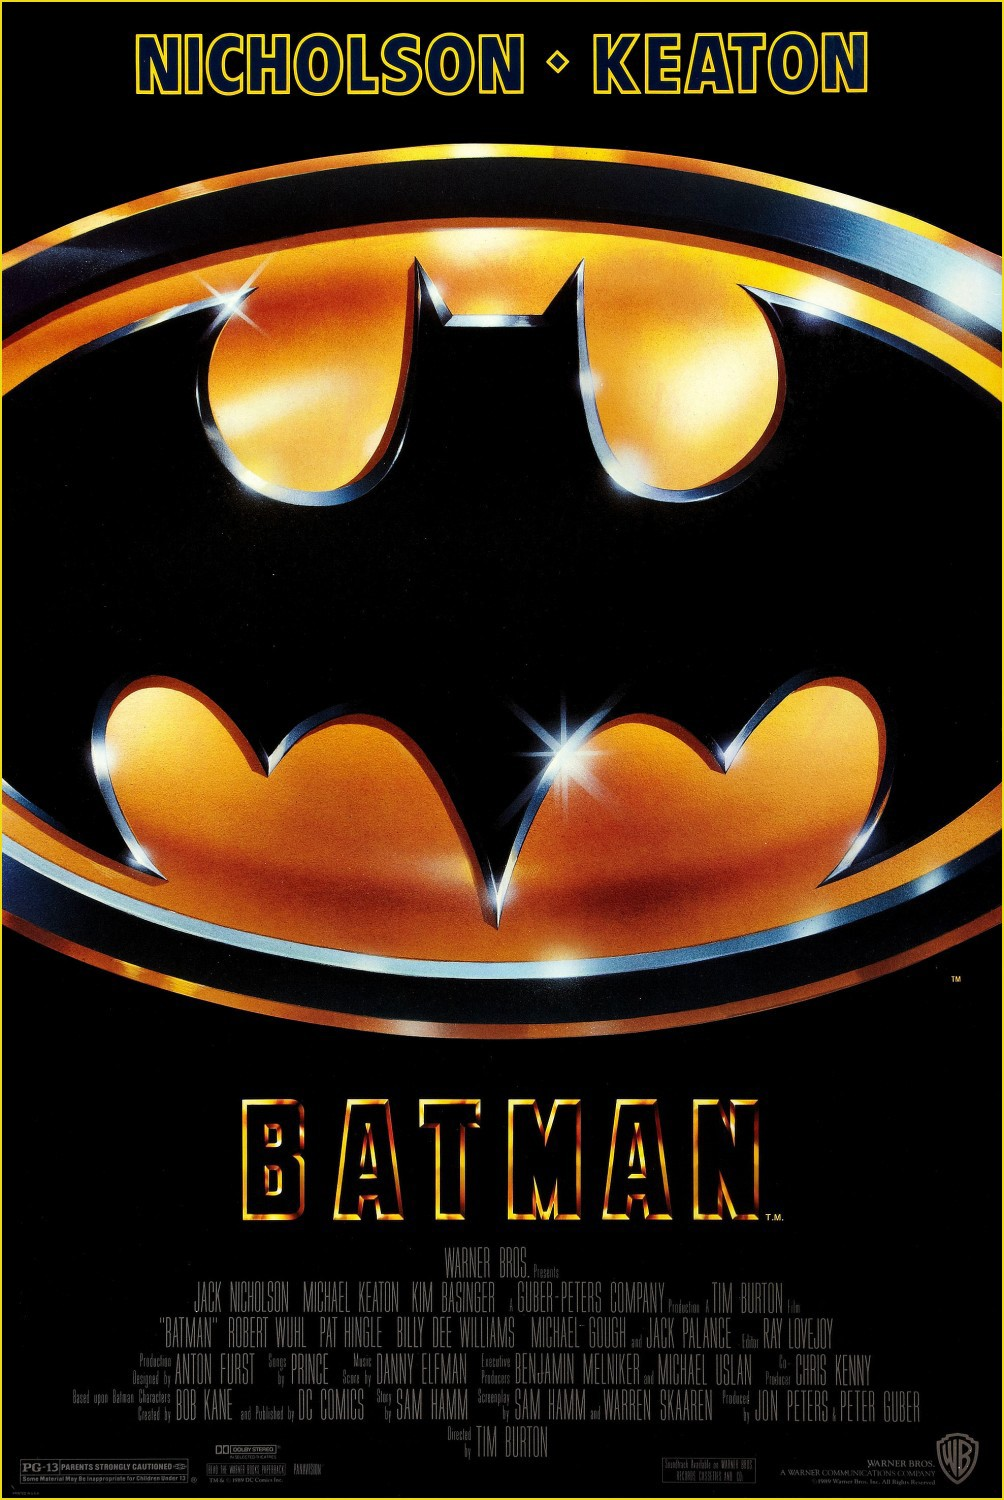 BATMAN [1989] • 30th Anniversary Re-Release